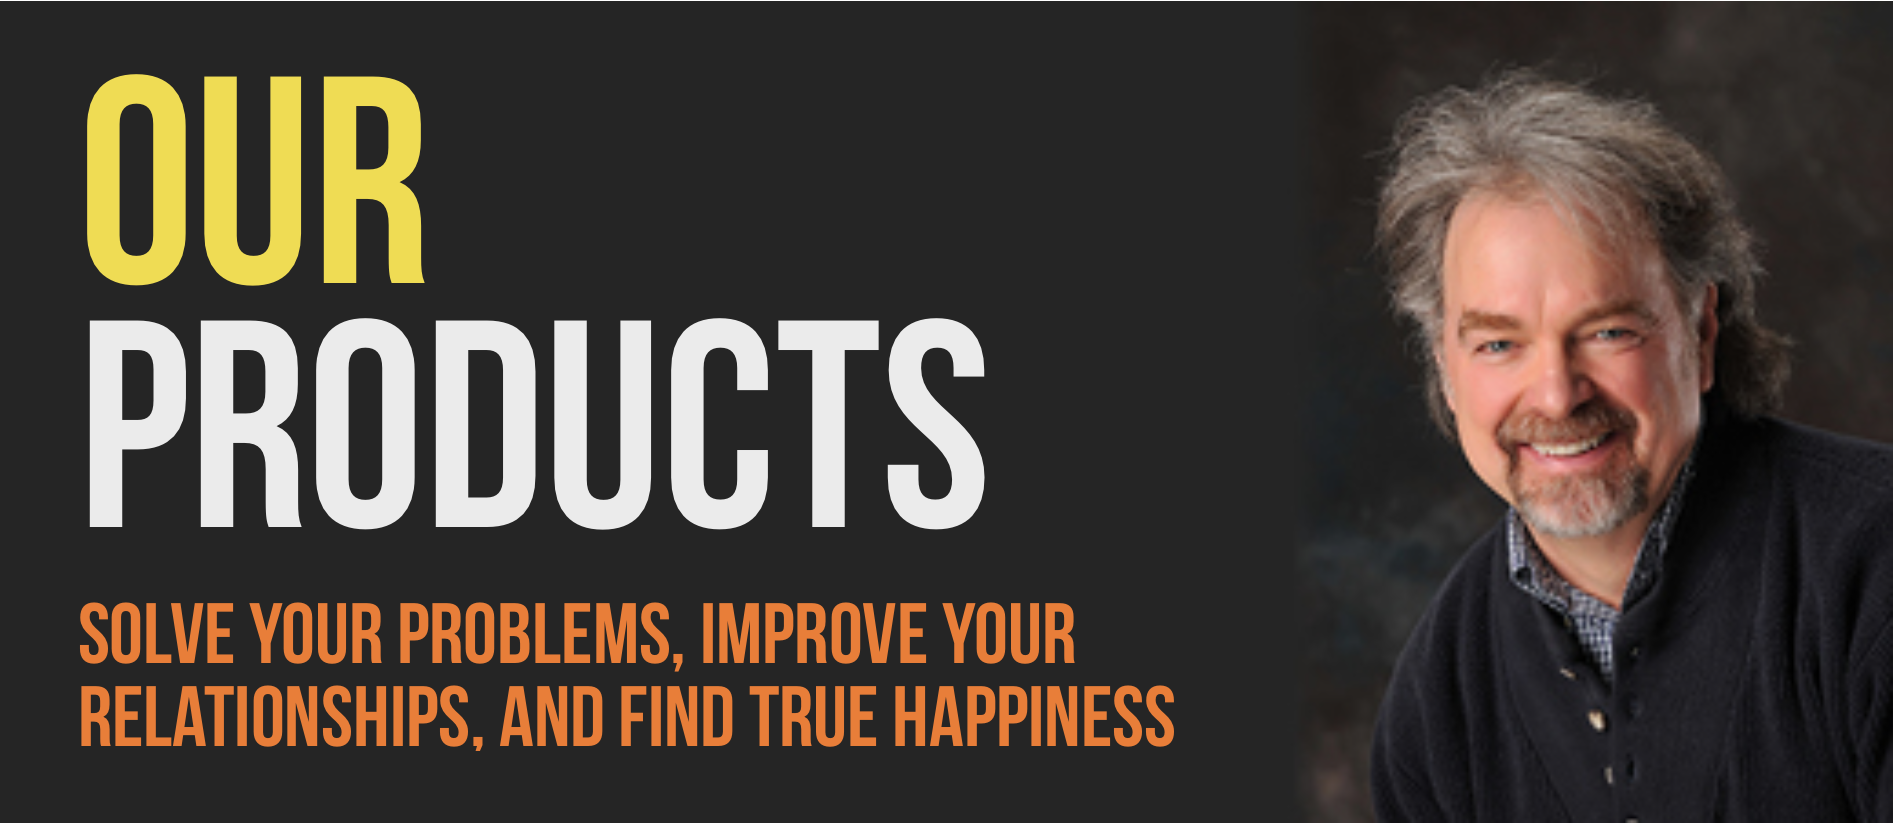 Banner with text: Our Products. Solve your problems, improve your relationships, and find true happiness.